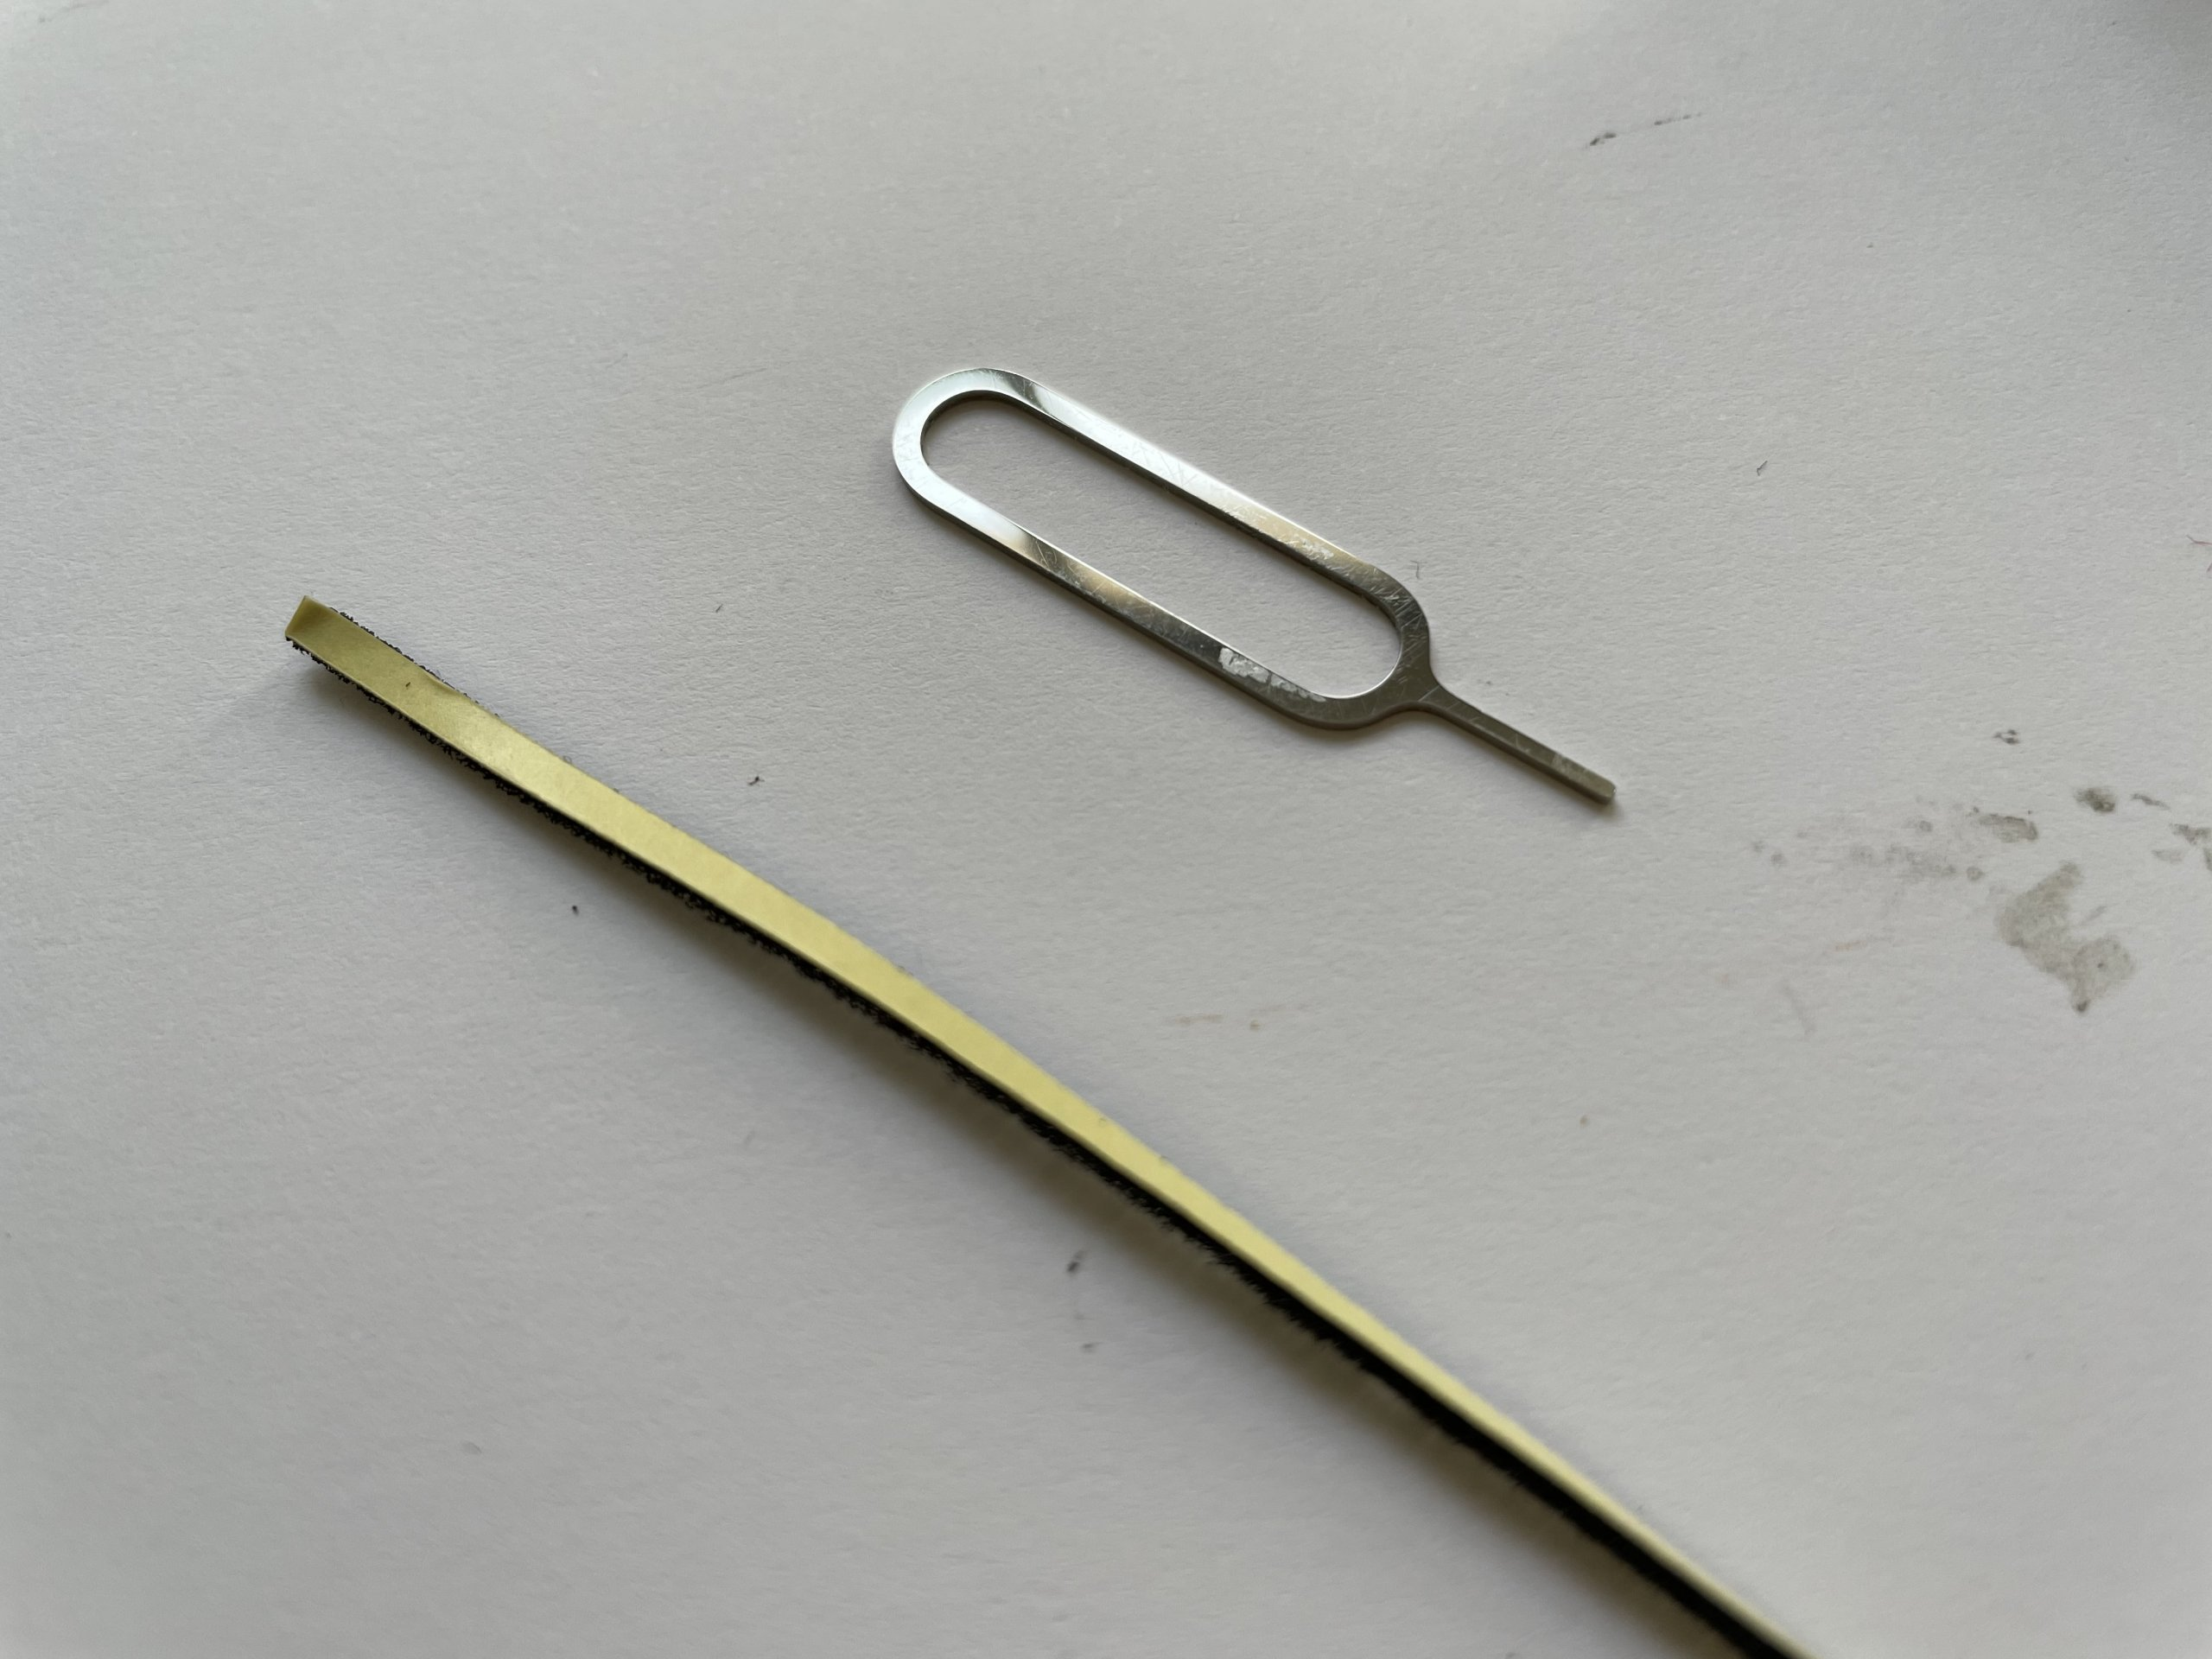 Thin foam strip and a SIM-eject tool